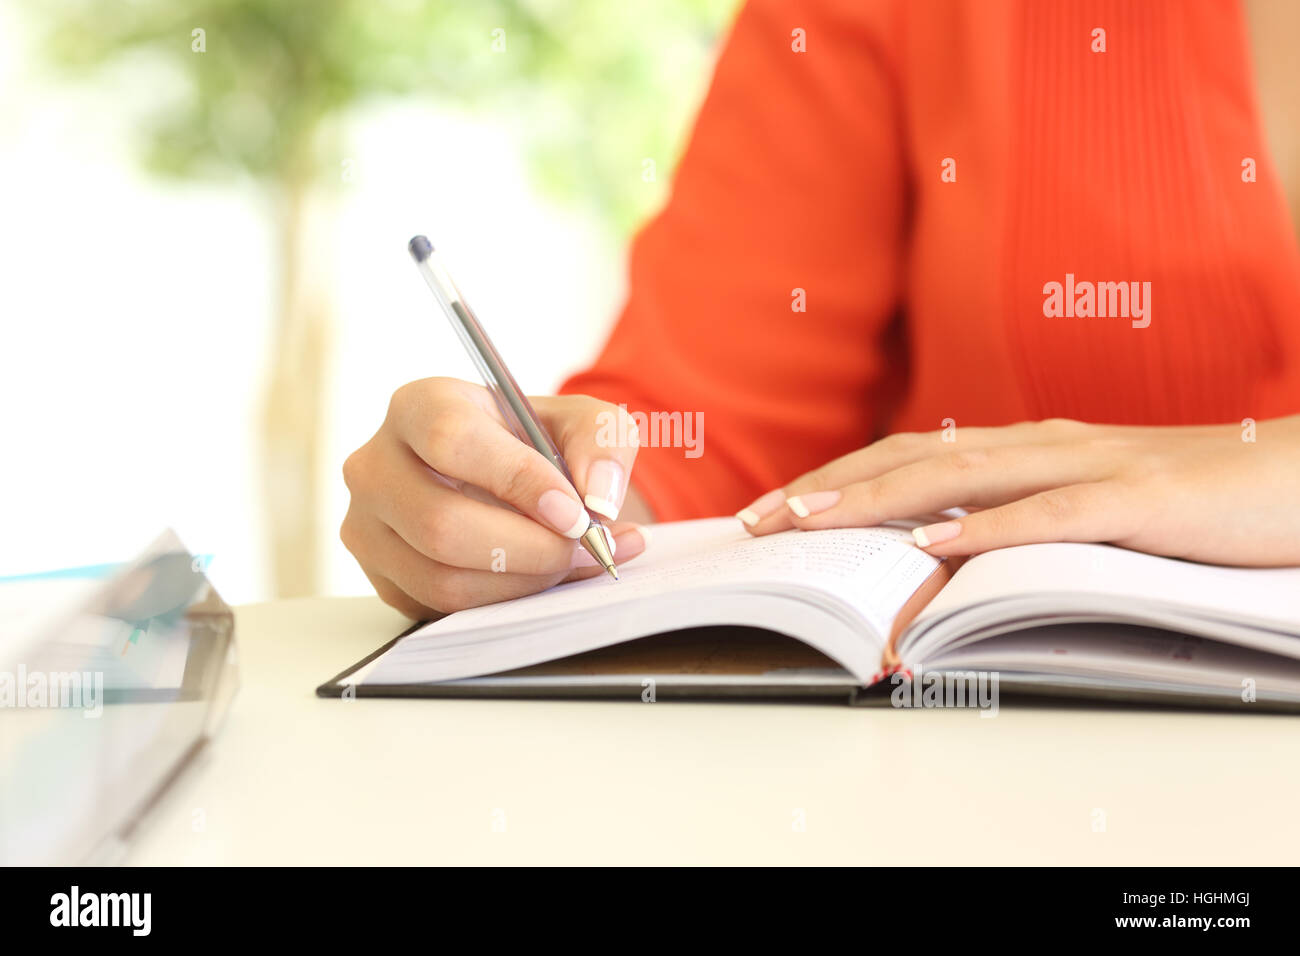 Businesswoman hand writing in agenda on a desk in the office - Stock Image